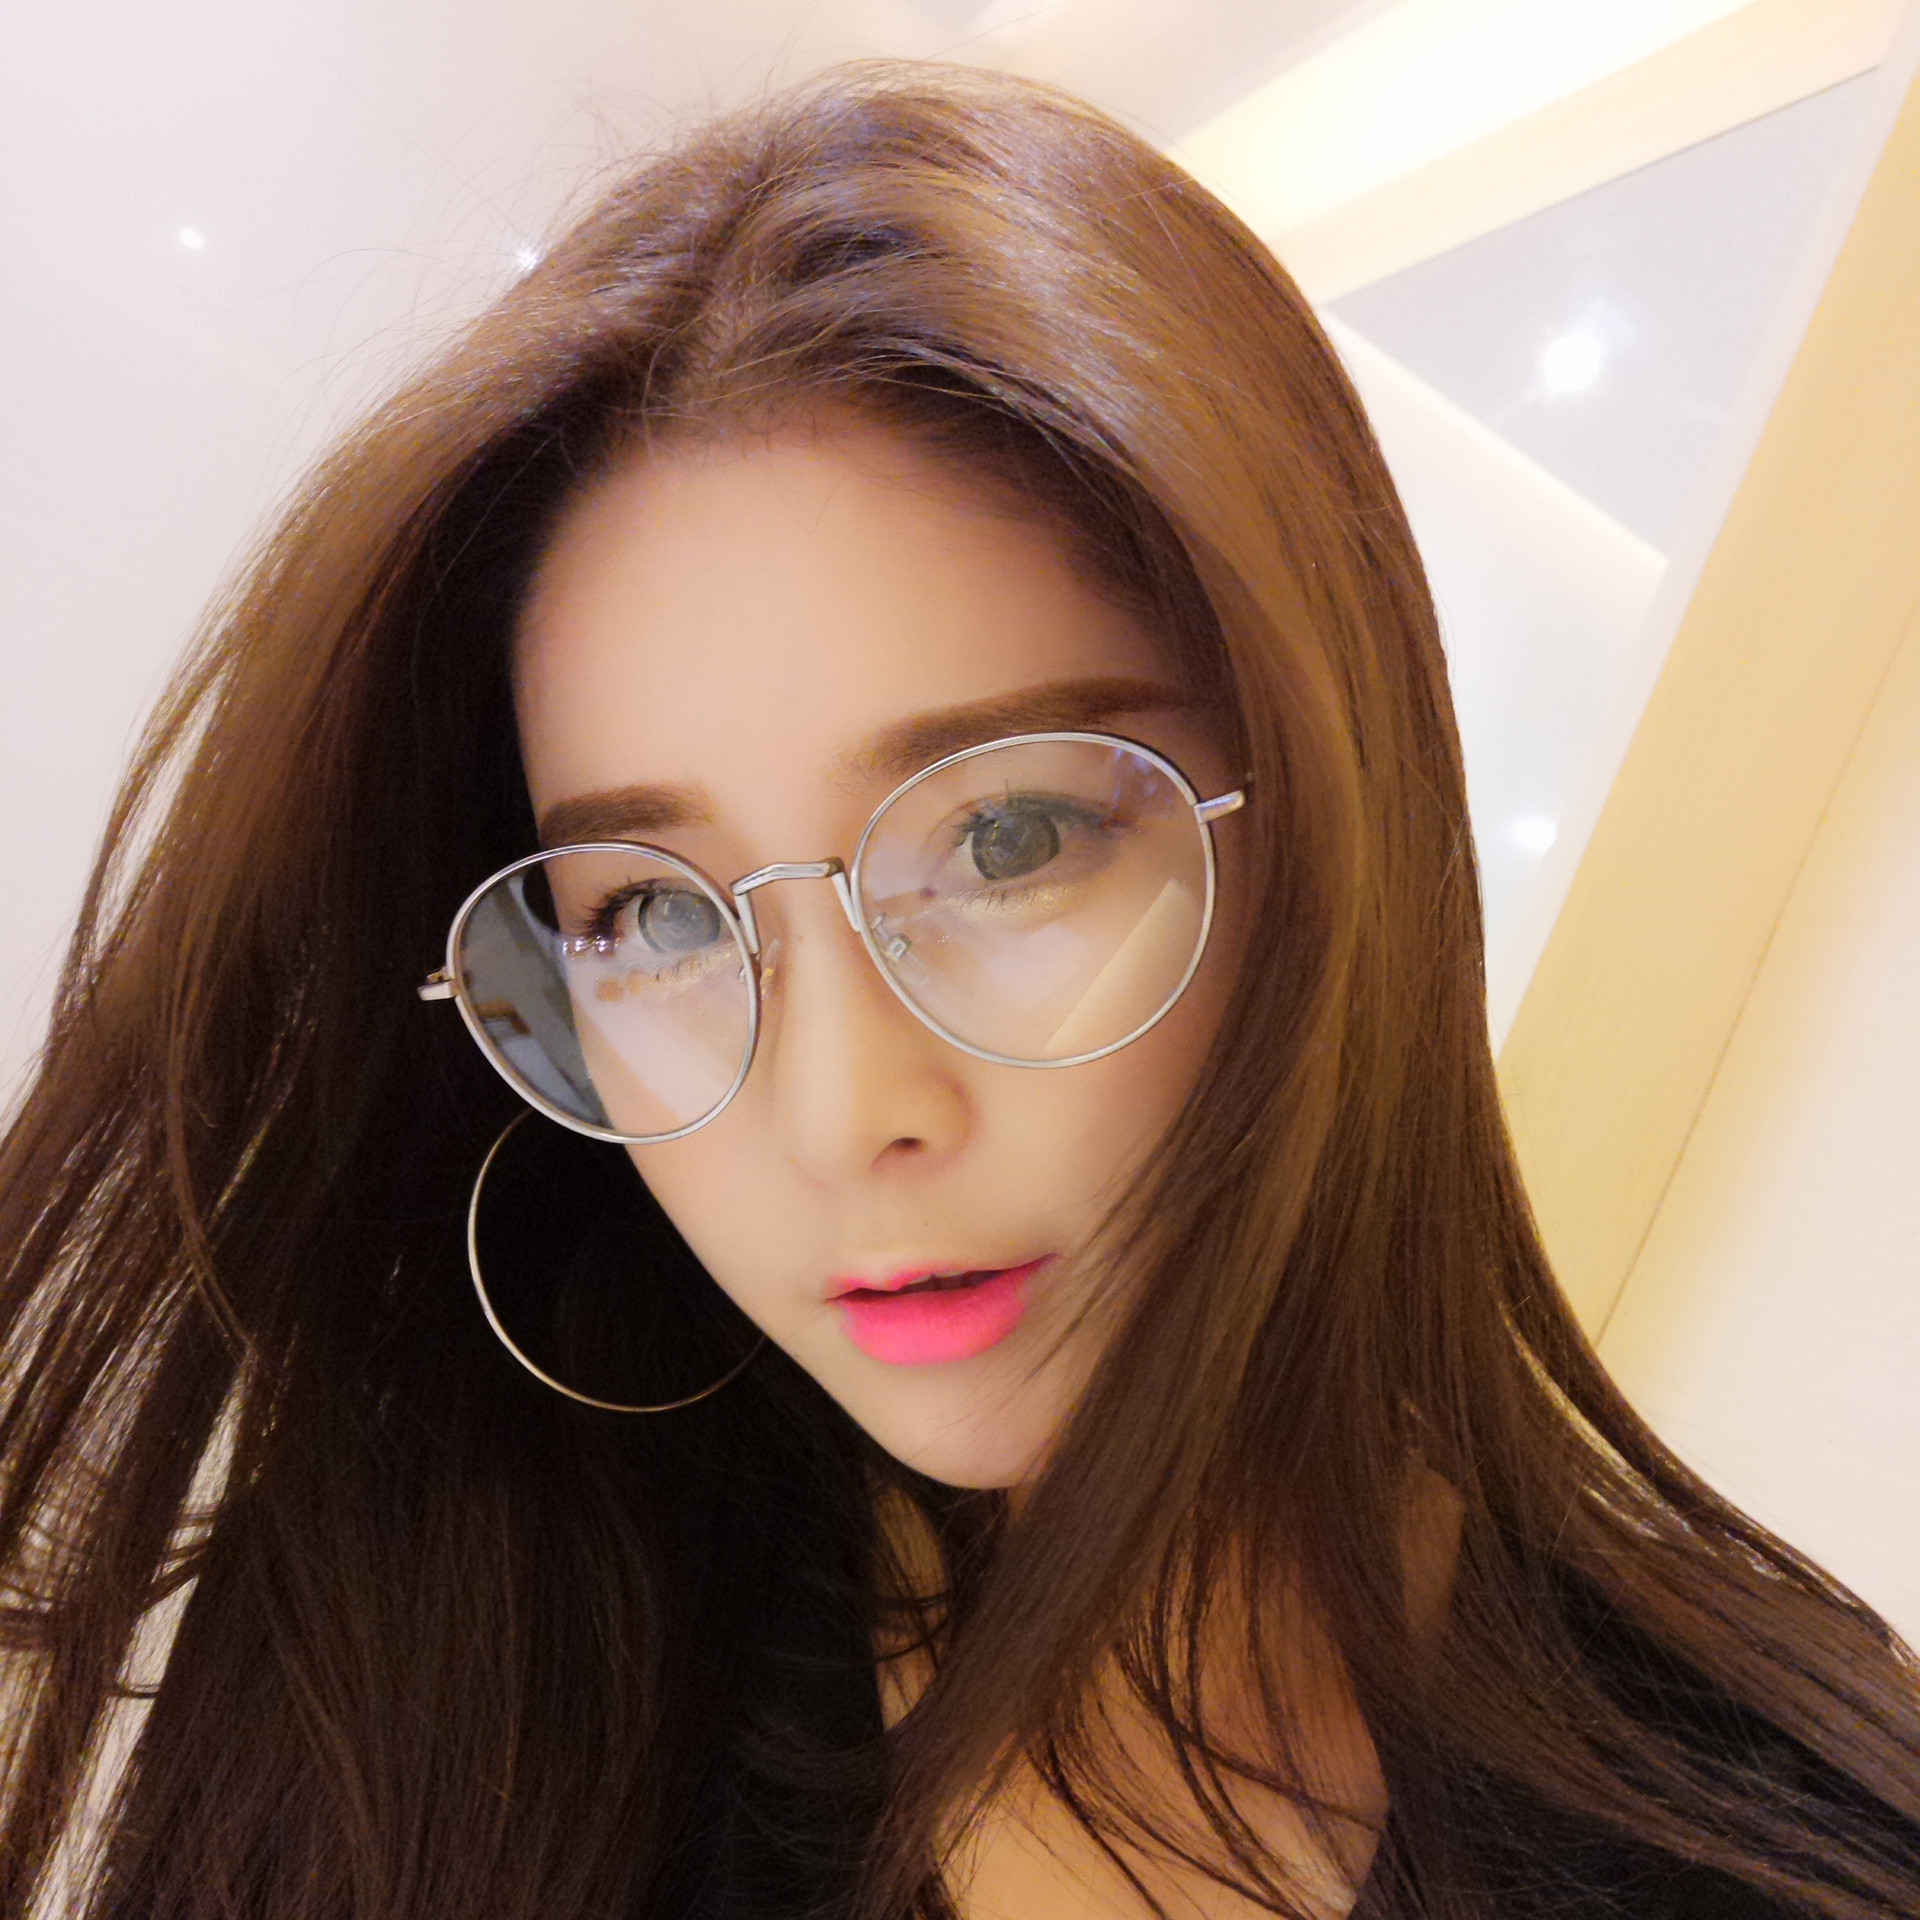 3cd44676ed21 The new south korean female influx of female literary retro round plain  glass spectacles 2016 nearly as the glasses frame glasses red mesh with the  money